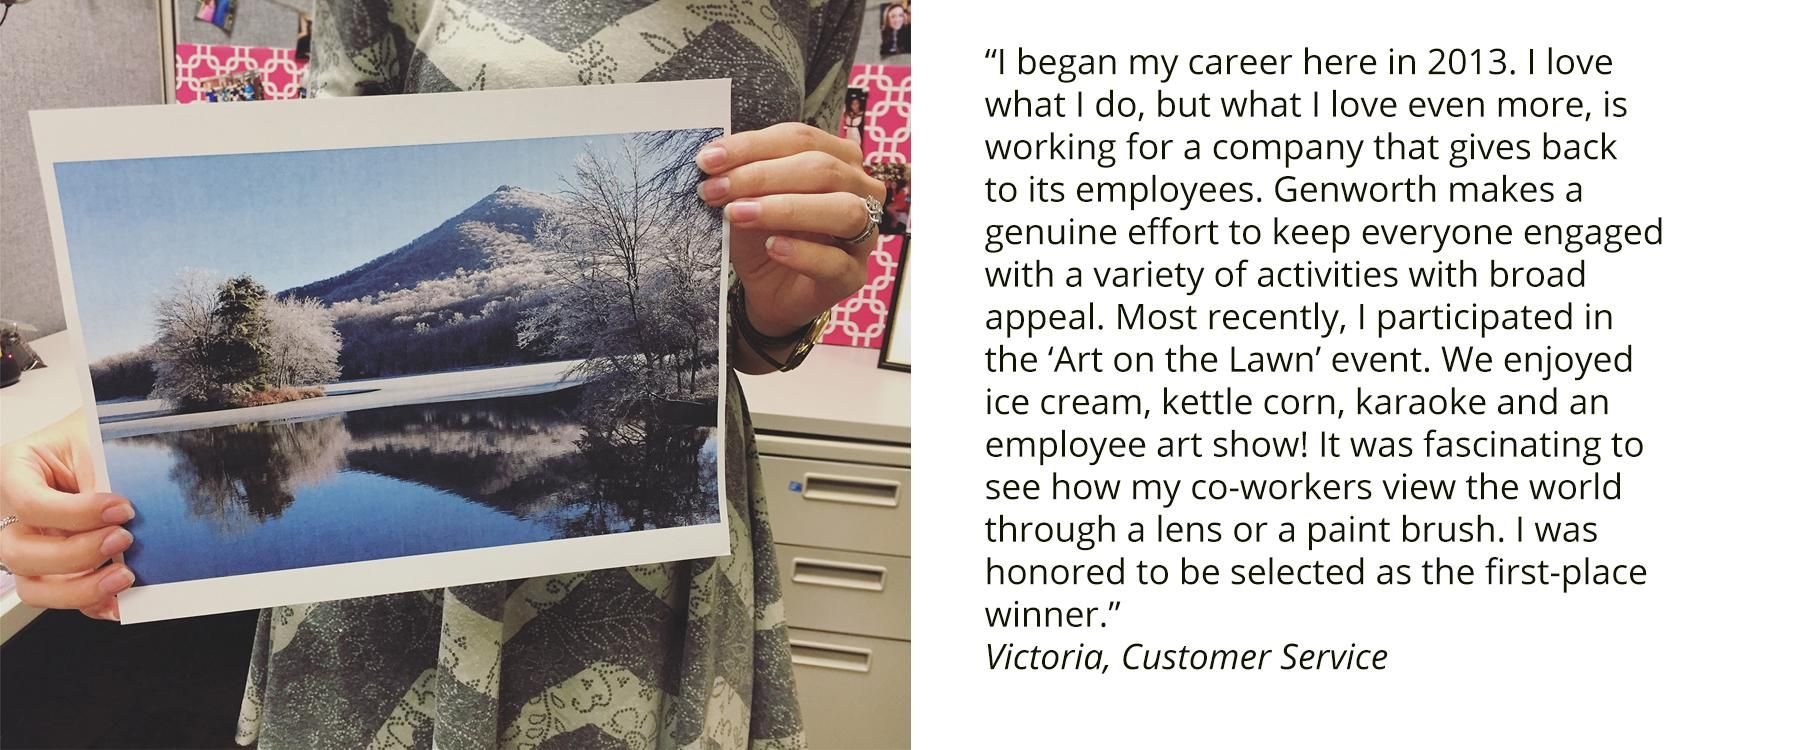 Feelgoodfriday Lovemyjob Artwork Companies That Give Back